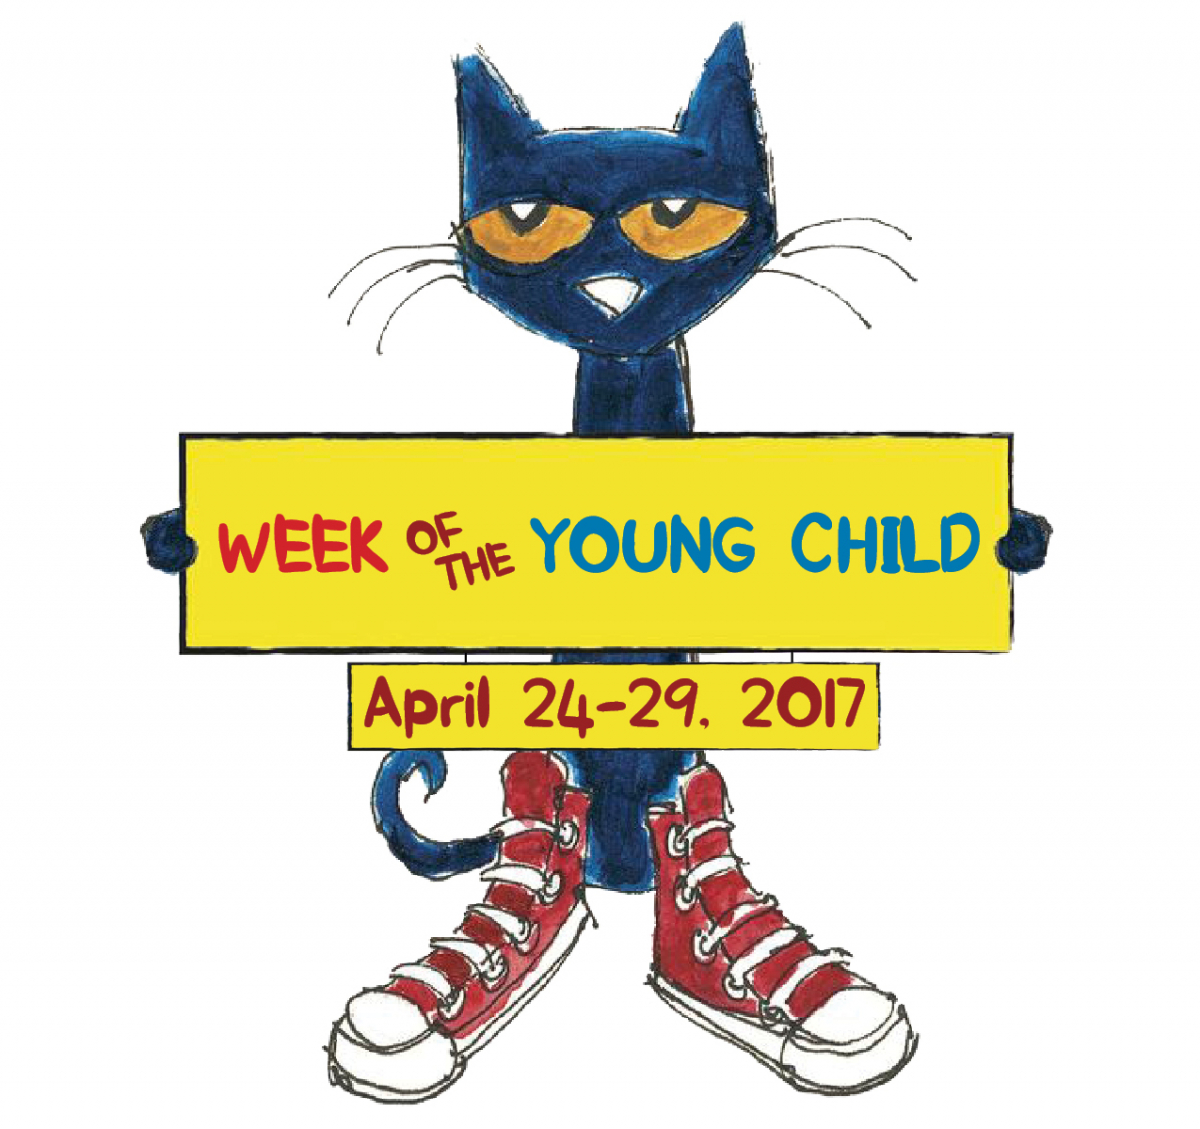 Week of the Young Child 2017.